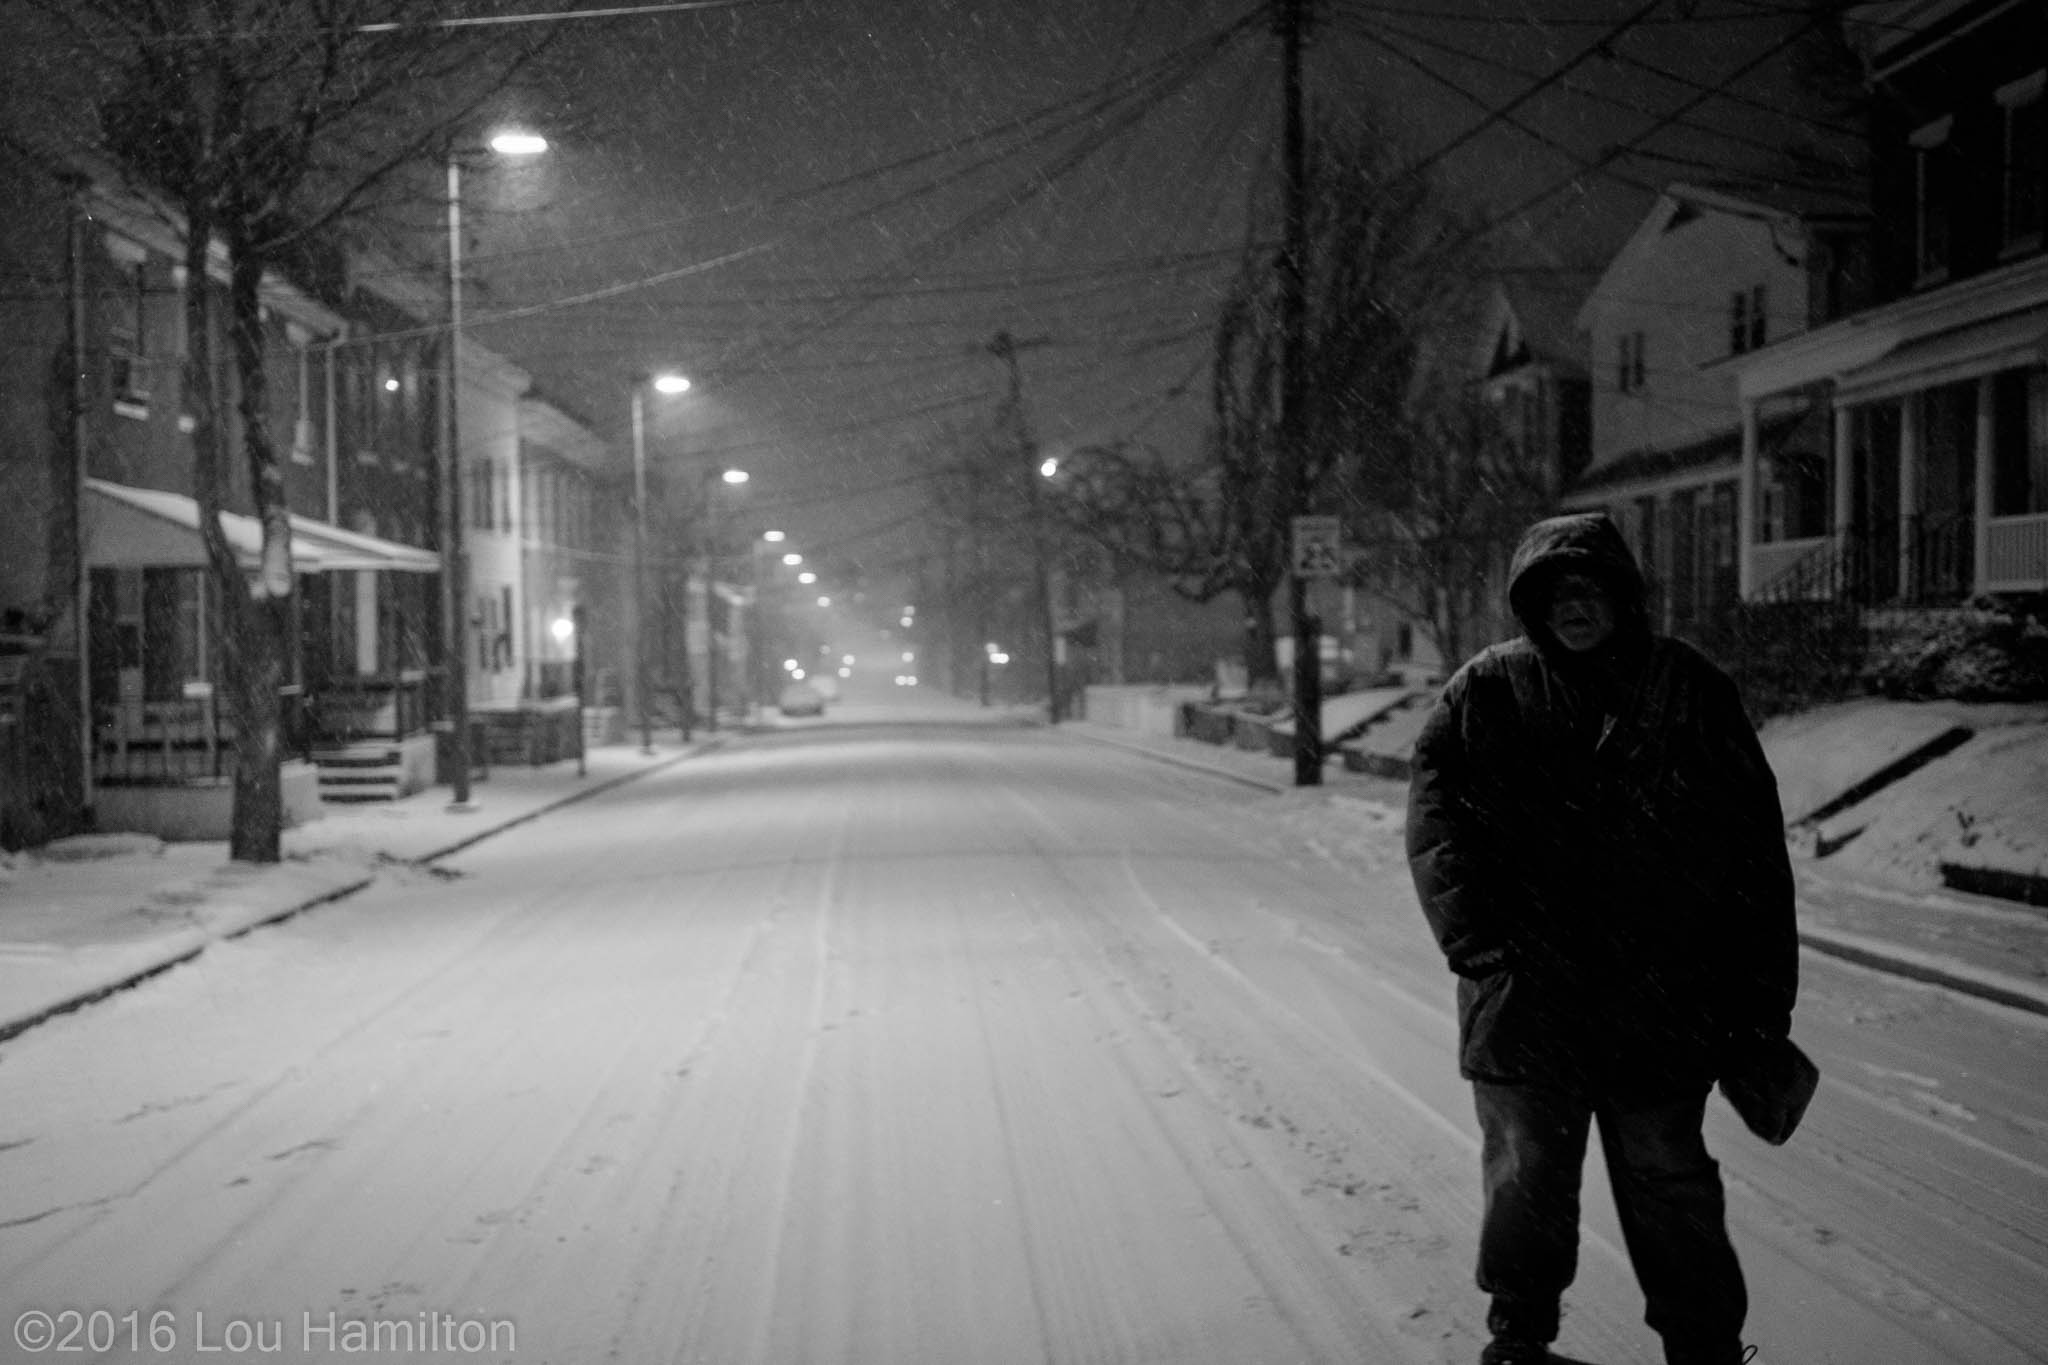 22 January 2016 -- Downtown Frederick, MD (Bentz and All Saints Streets)